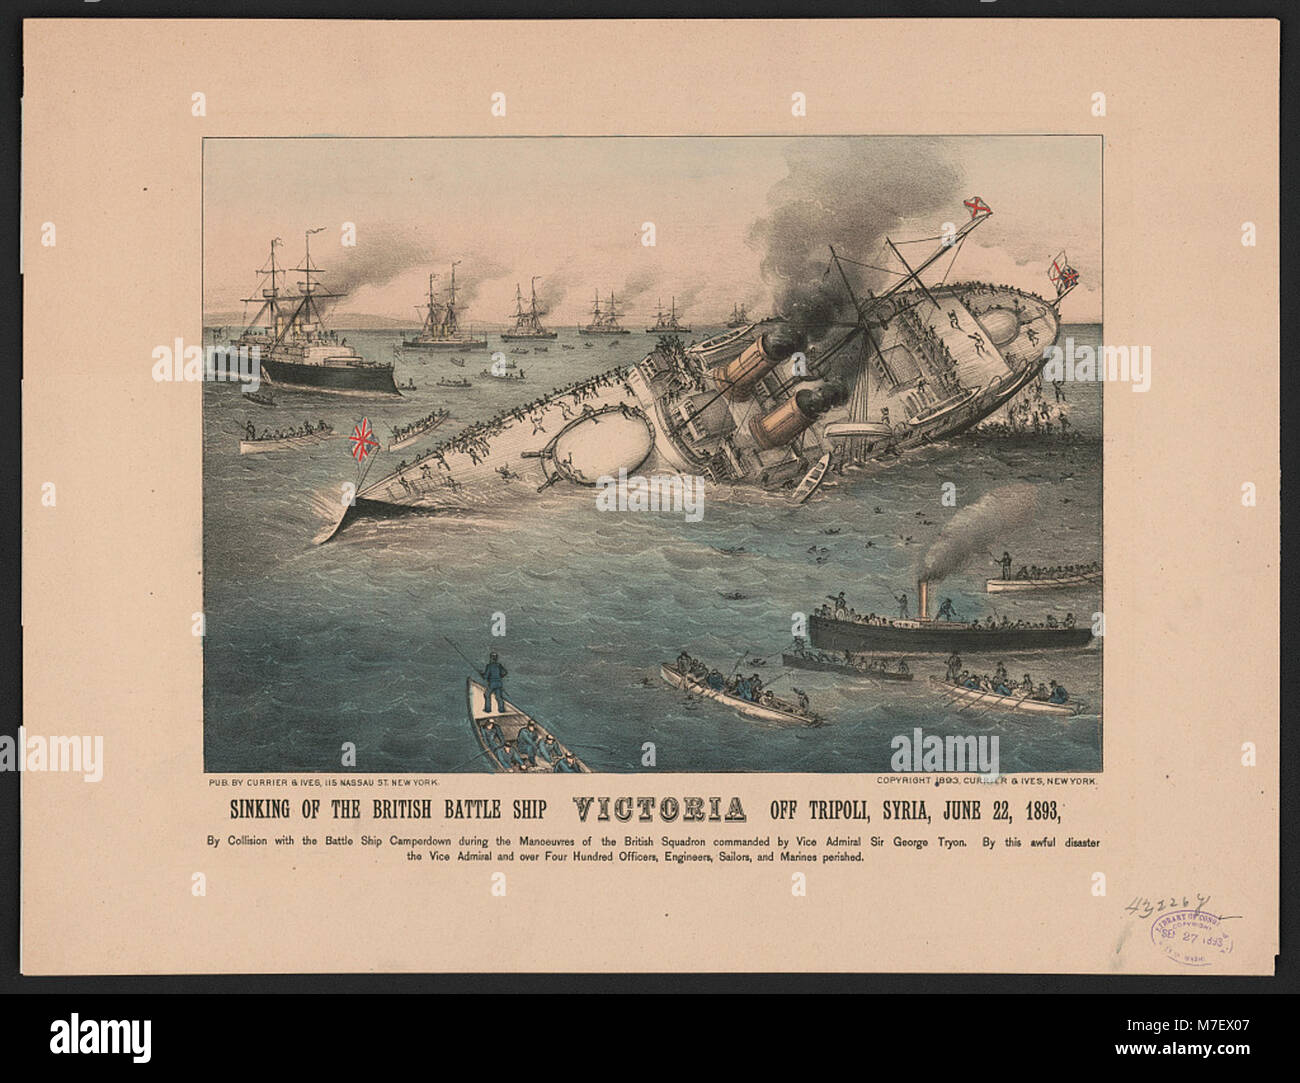 Sinking of the british battle ship victoria off tripoli syria june sinking of the british battle ship victoria off tripoli syria june 22 1893 lccn2001705846 publicscrutiny Images